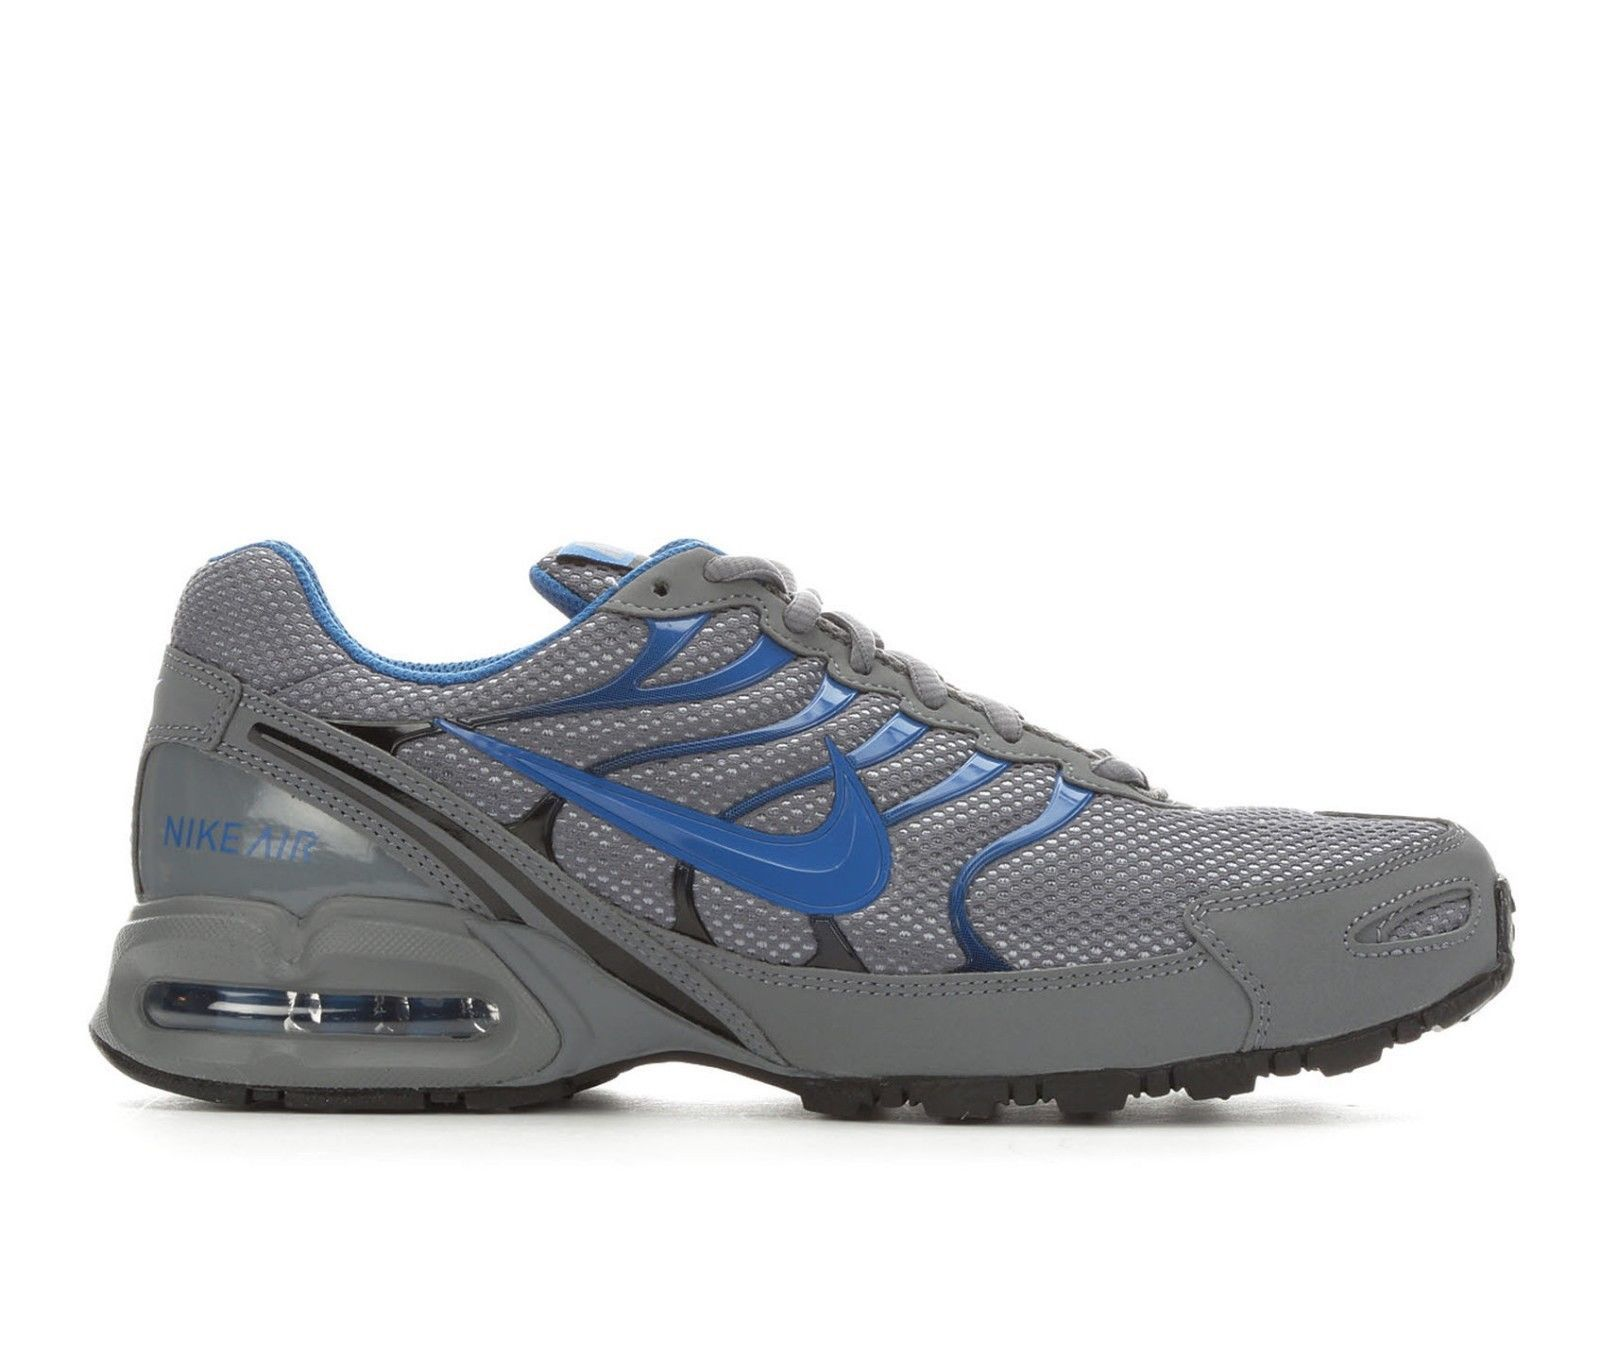 low priced 3745f 2879a ... best price abordable nouvelbaskets de nouvelbaskets abordable nike air  max torche 4 hommes et 5 articsimilaires